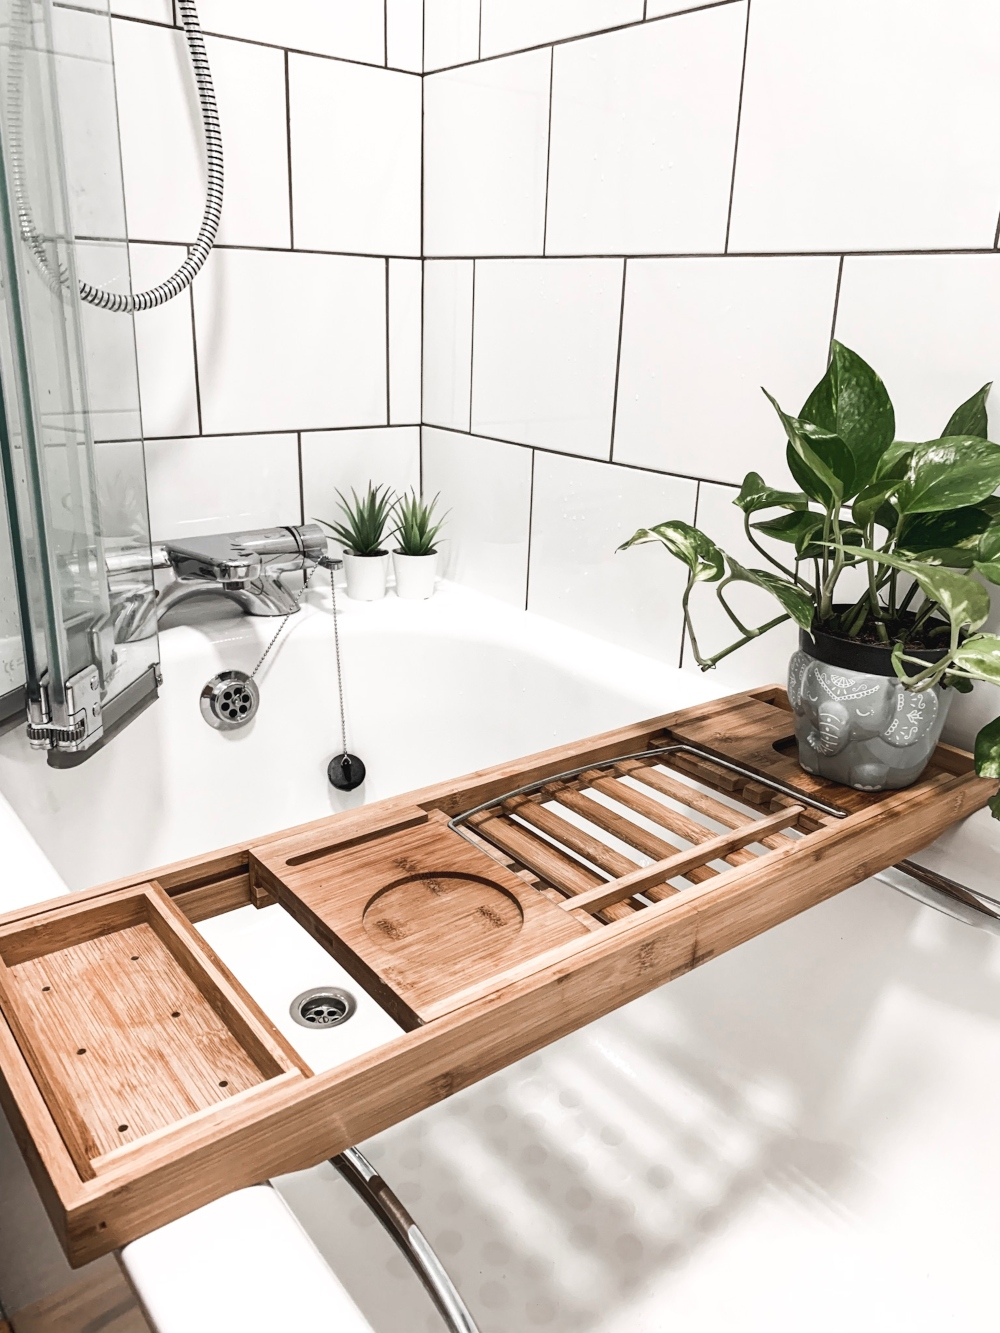 Our New Bathroom | White, neutral, wood, natural